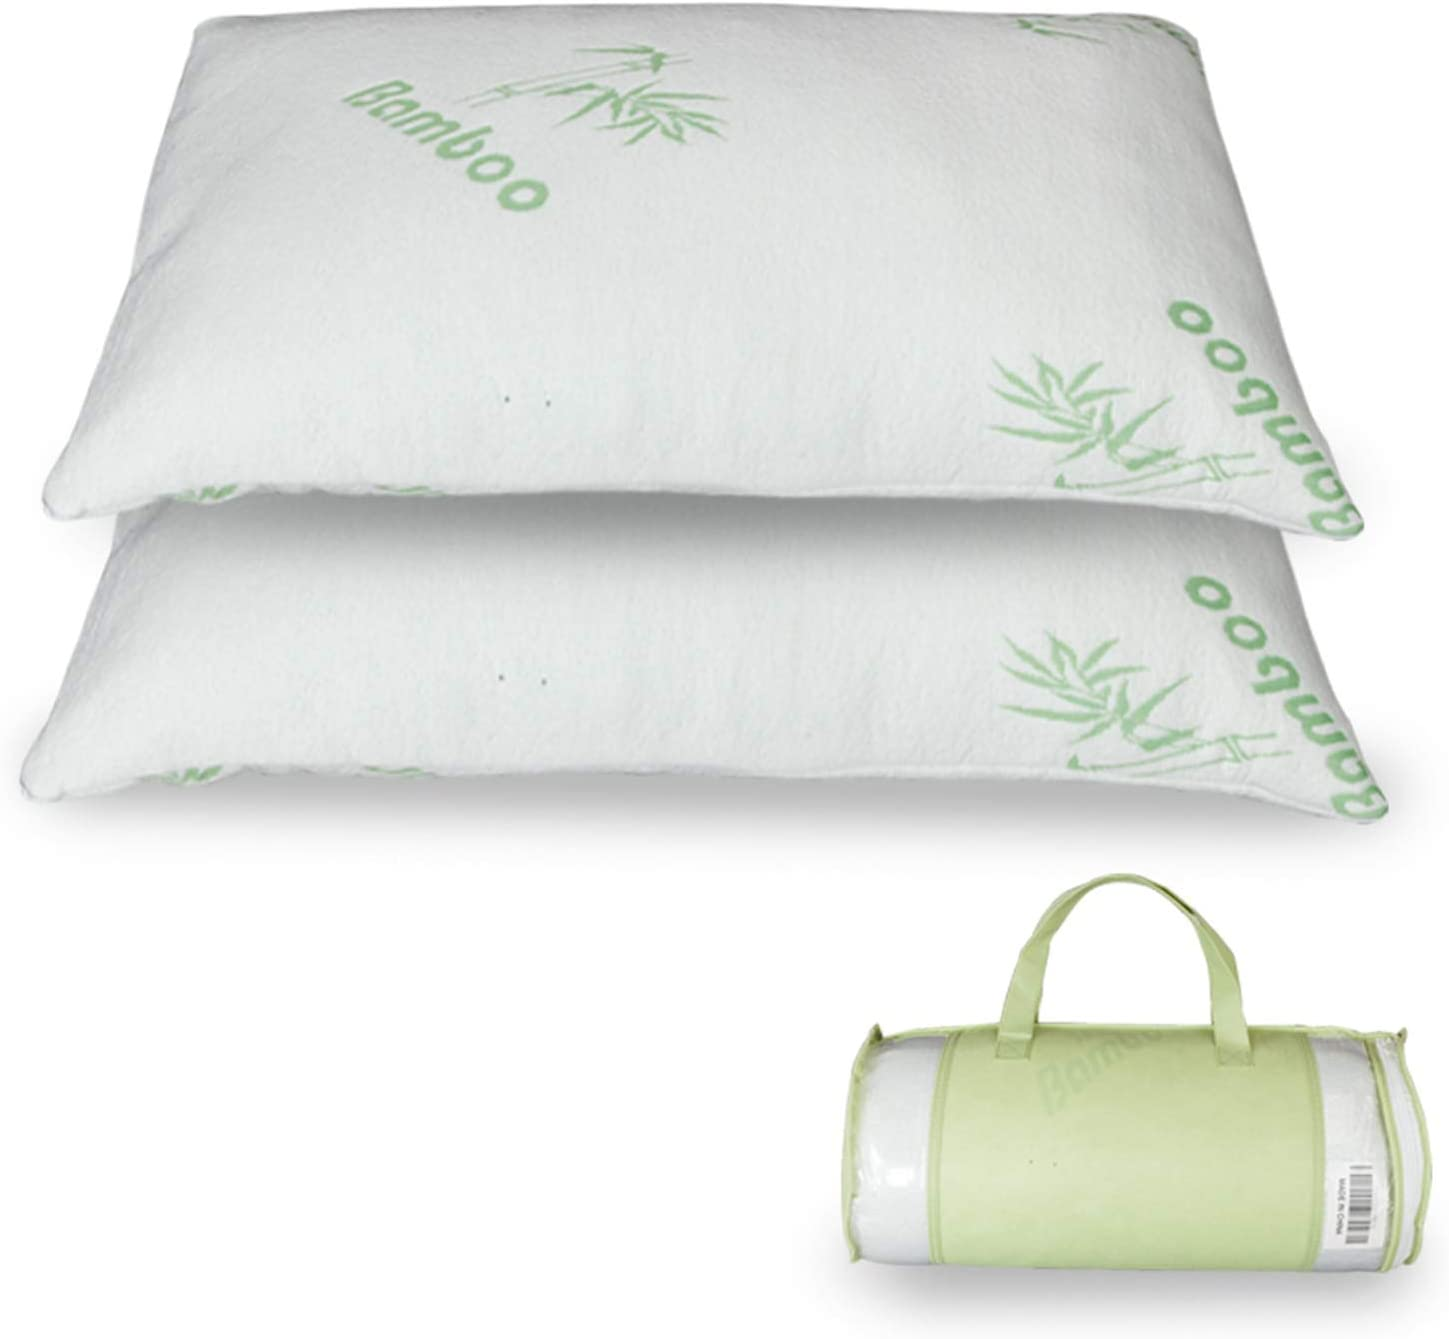 SPARSIFOLIA Memory Cotton Pillow; Gel Pillows Contour Support; Used for Neck Pain, Orthopedic, Back, Stomach, Side Sleepers; King Size; Single/Nantong; White